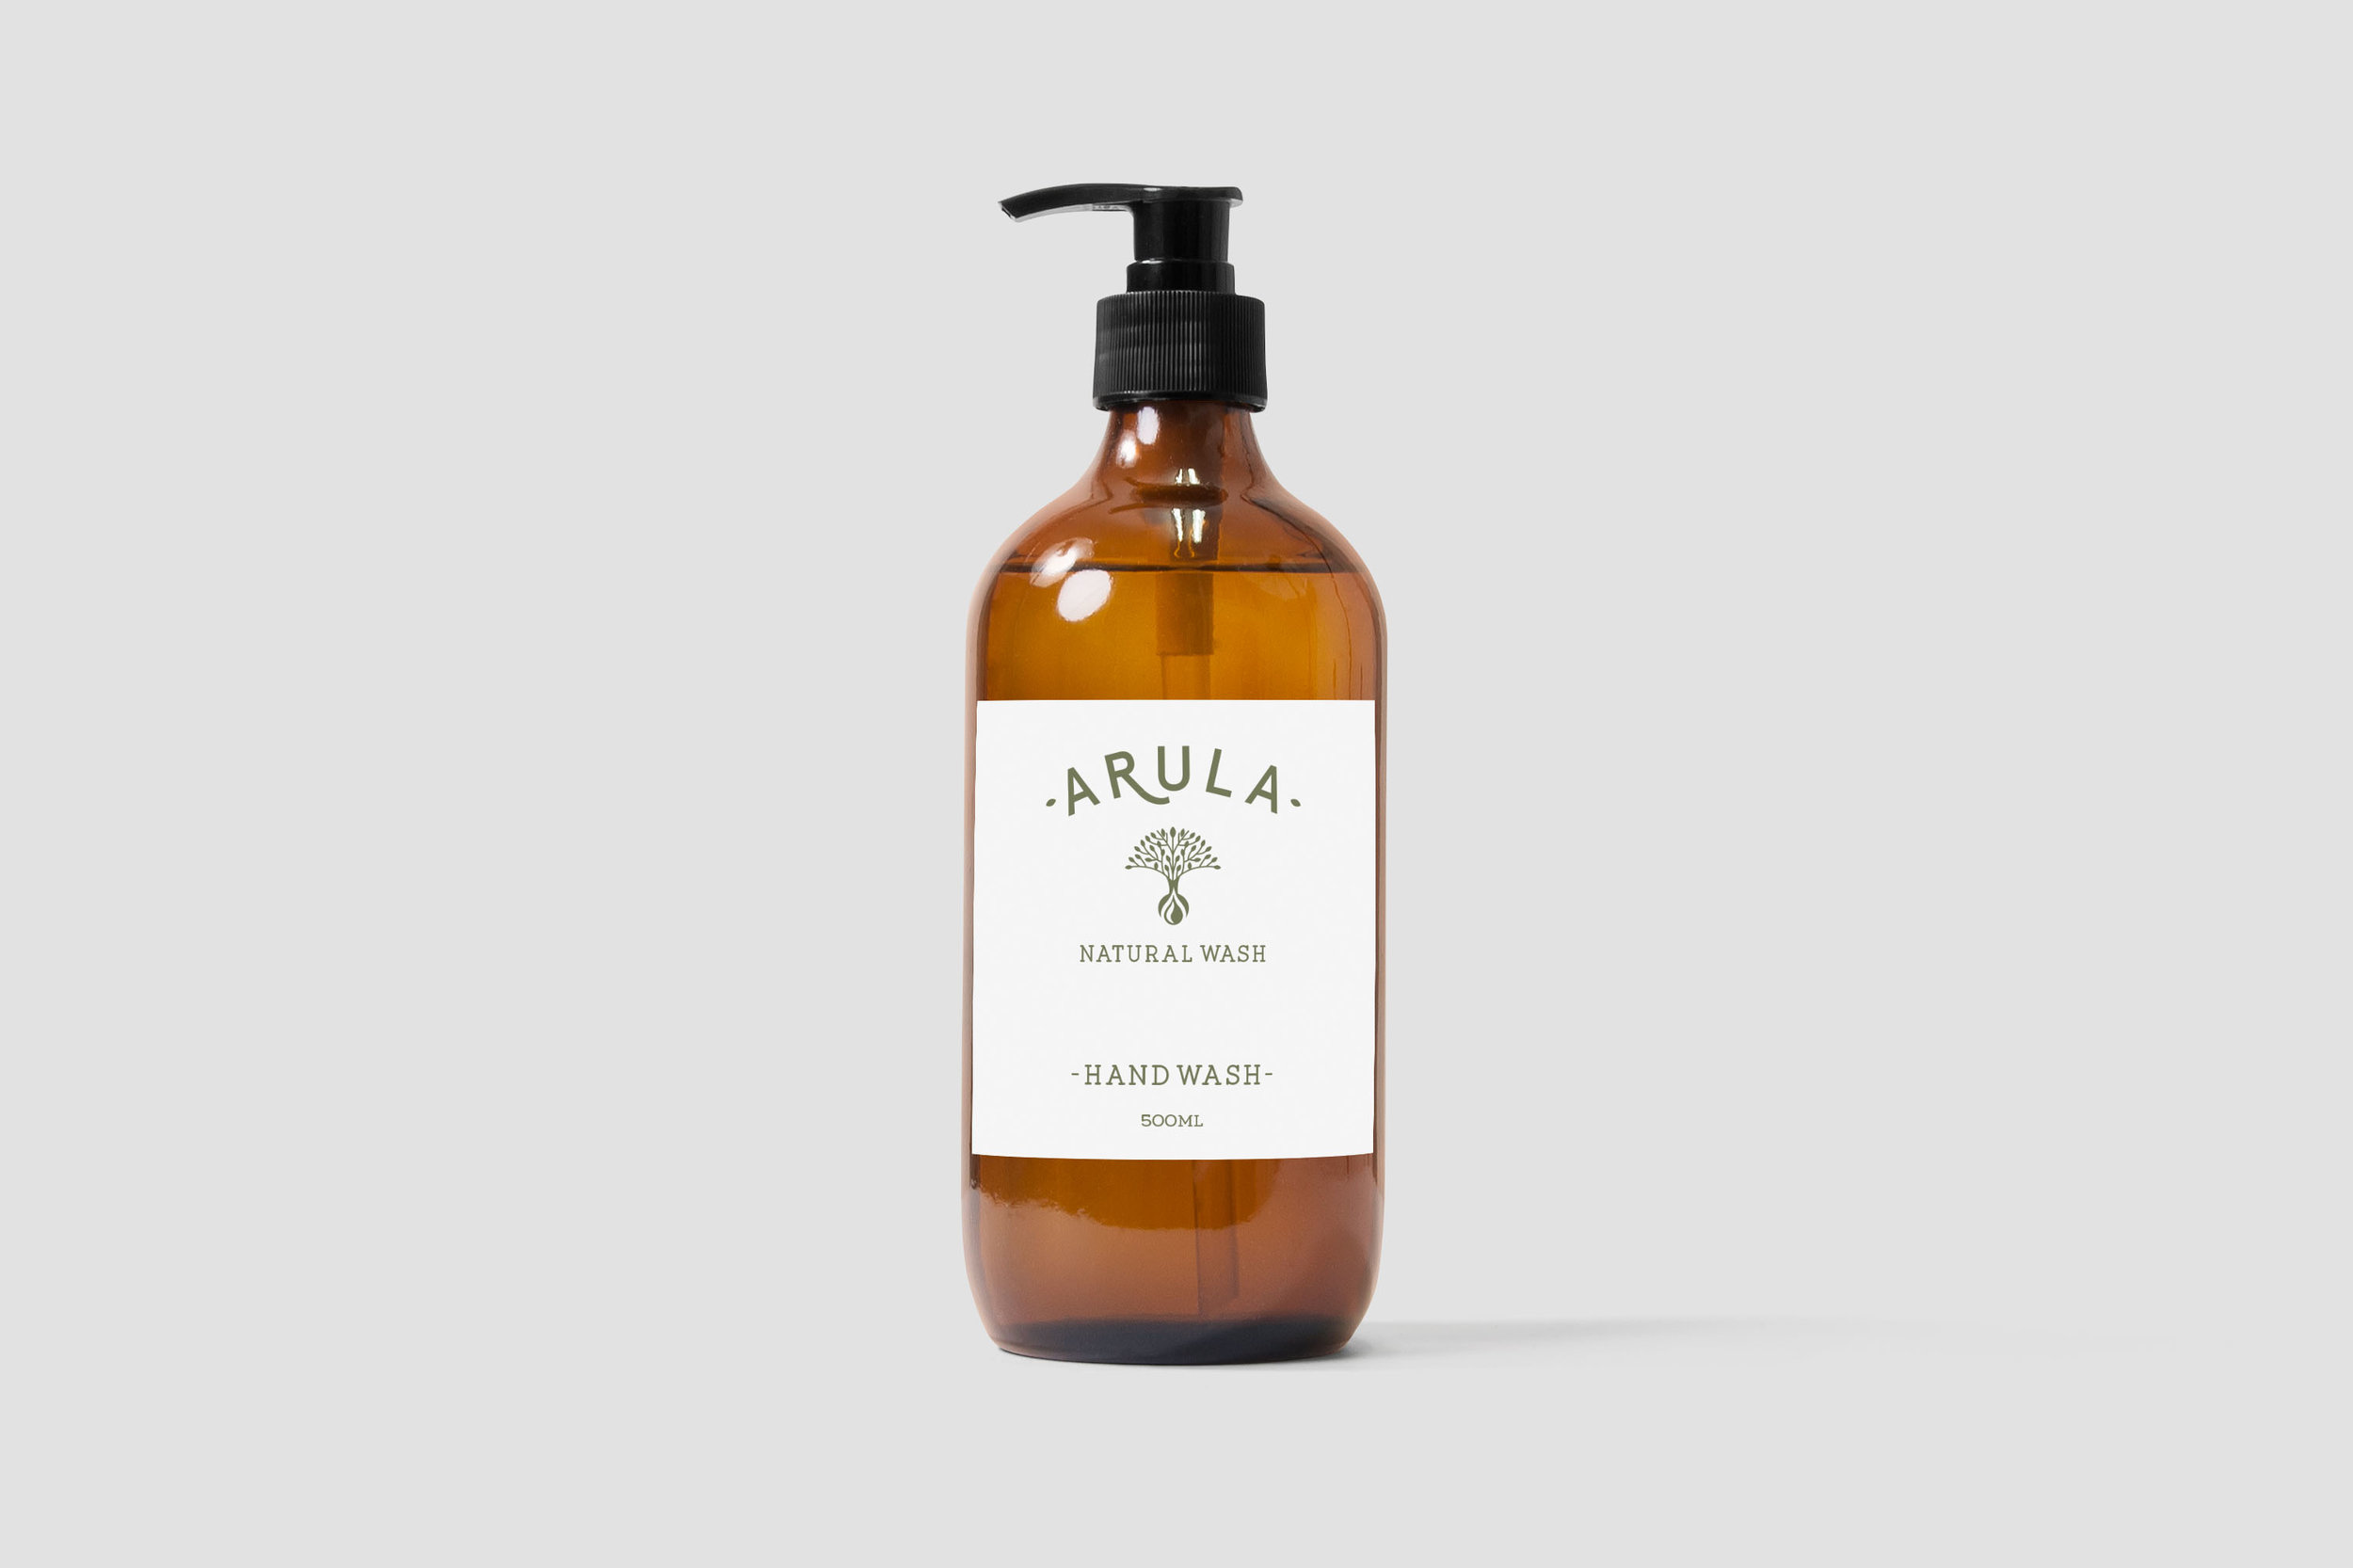 Arula bottle mcockup 3_.jpg